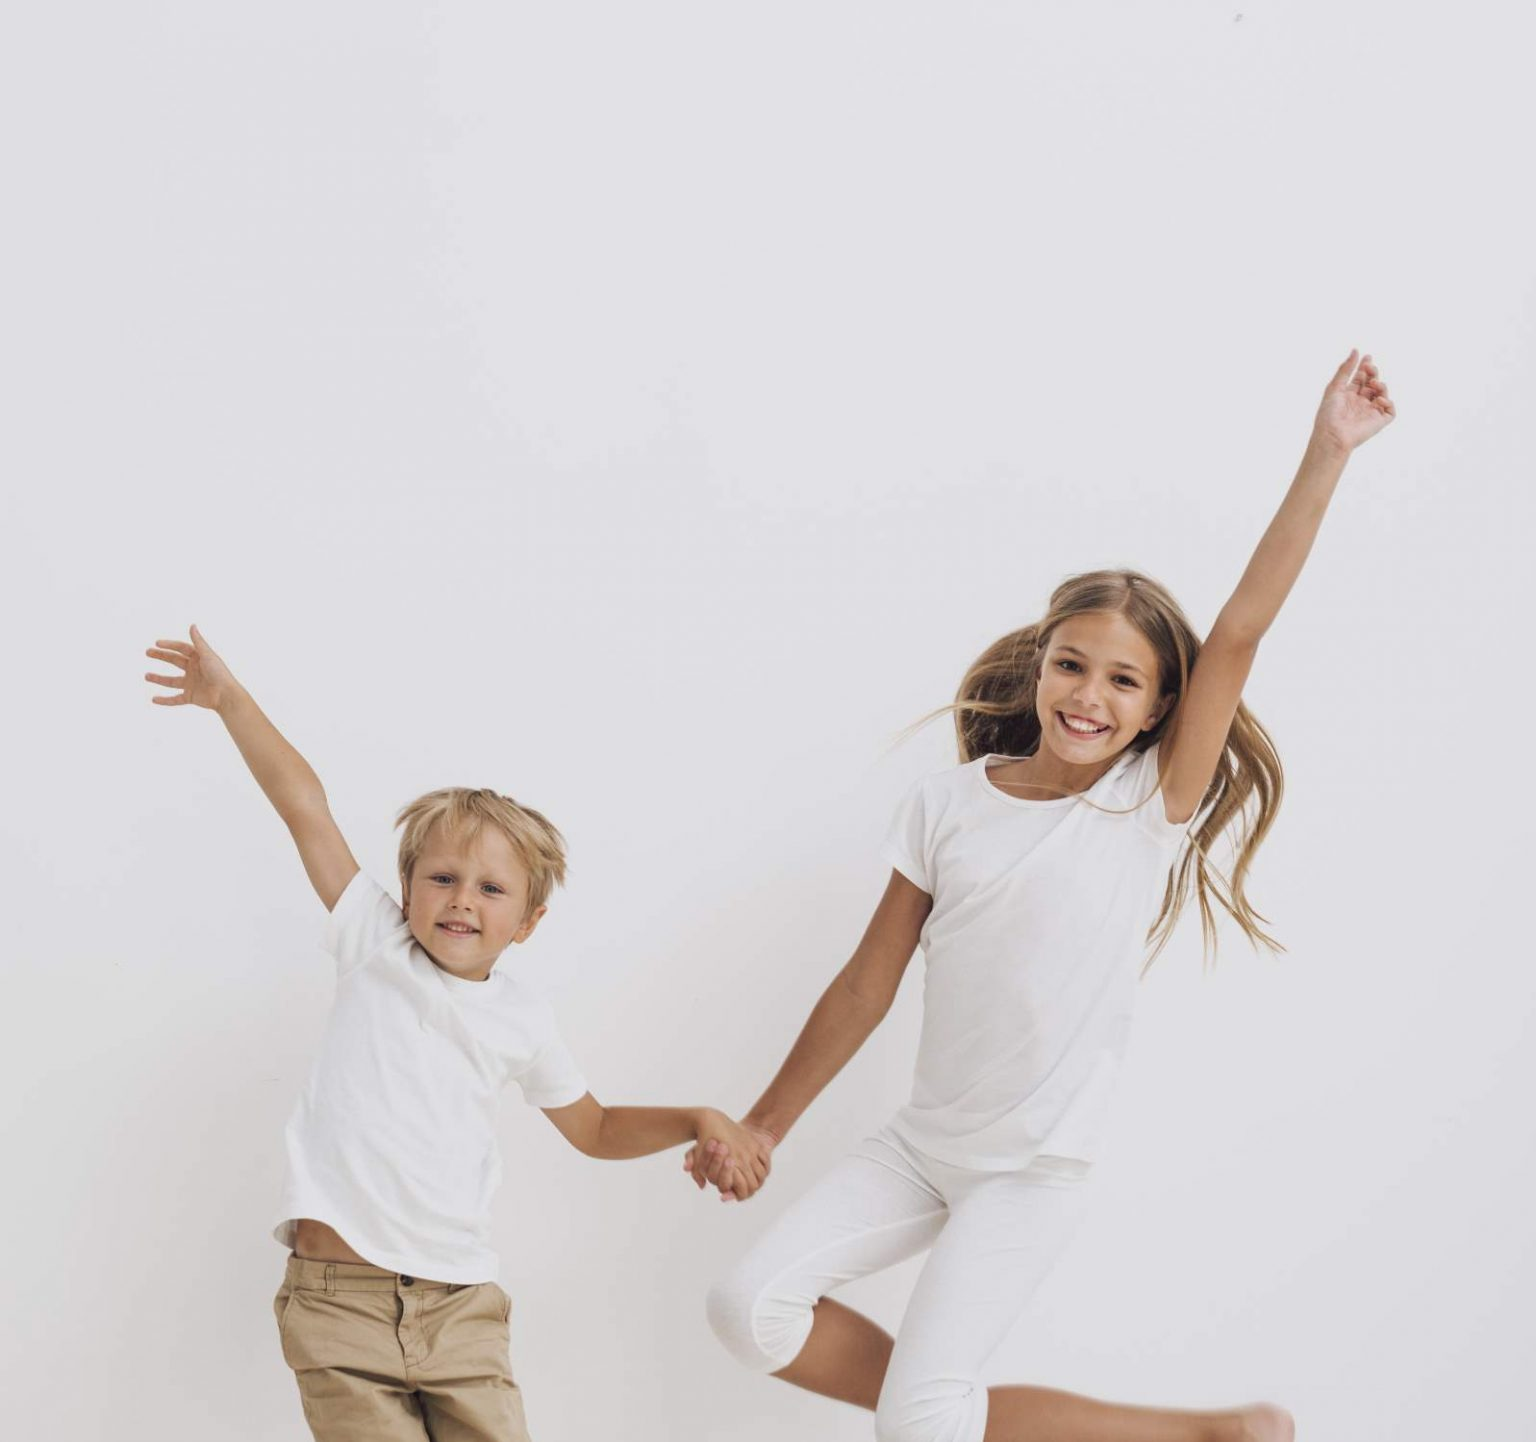 Kids Jumping in the Air on White Background